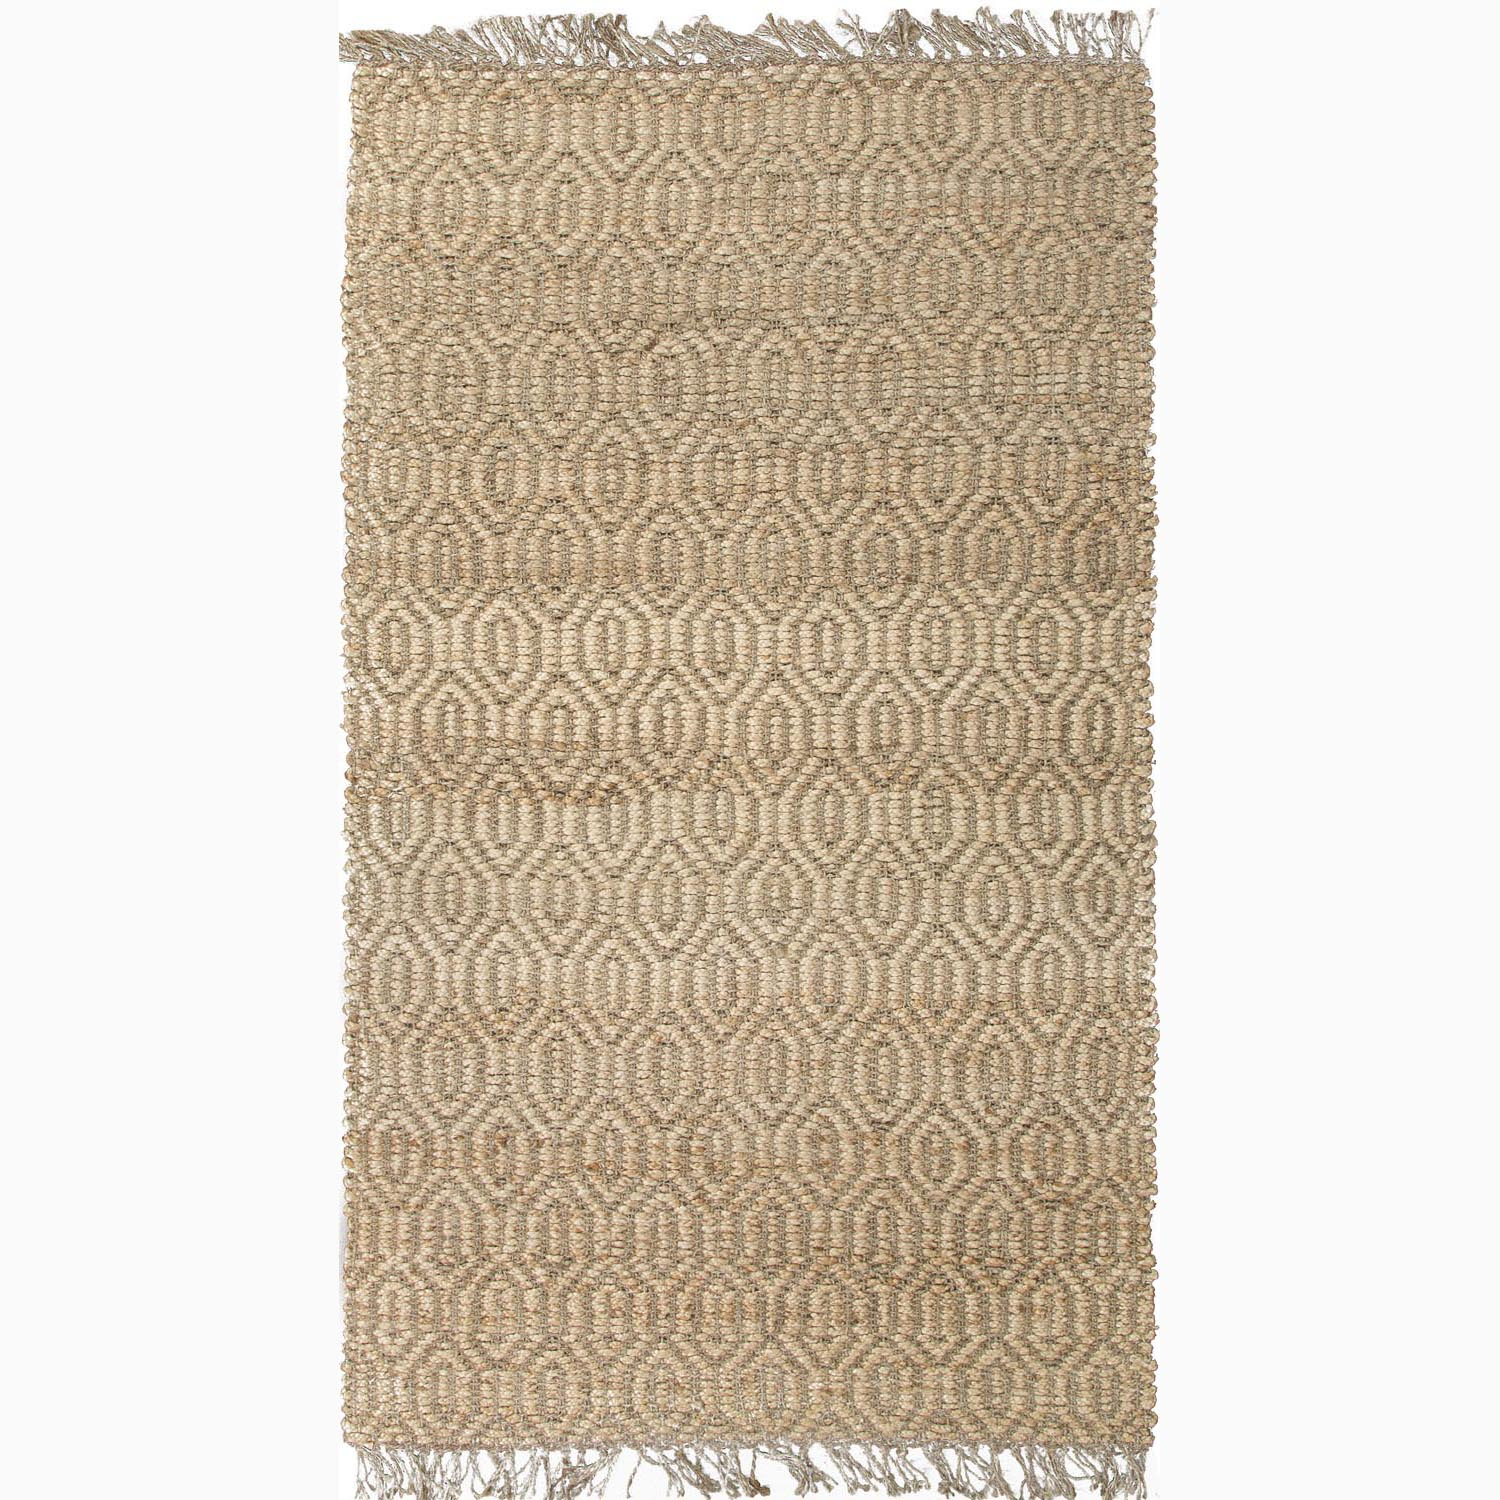 Handmade Contemporary Taupe/ Tan Jute Natural Rug (5 x 8)